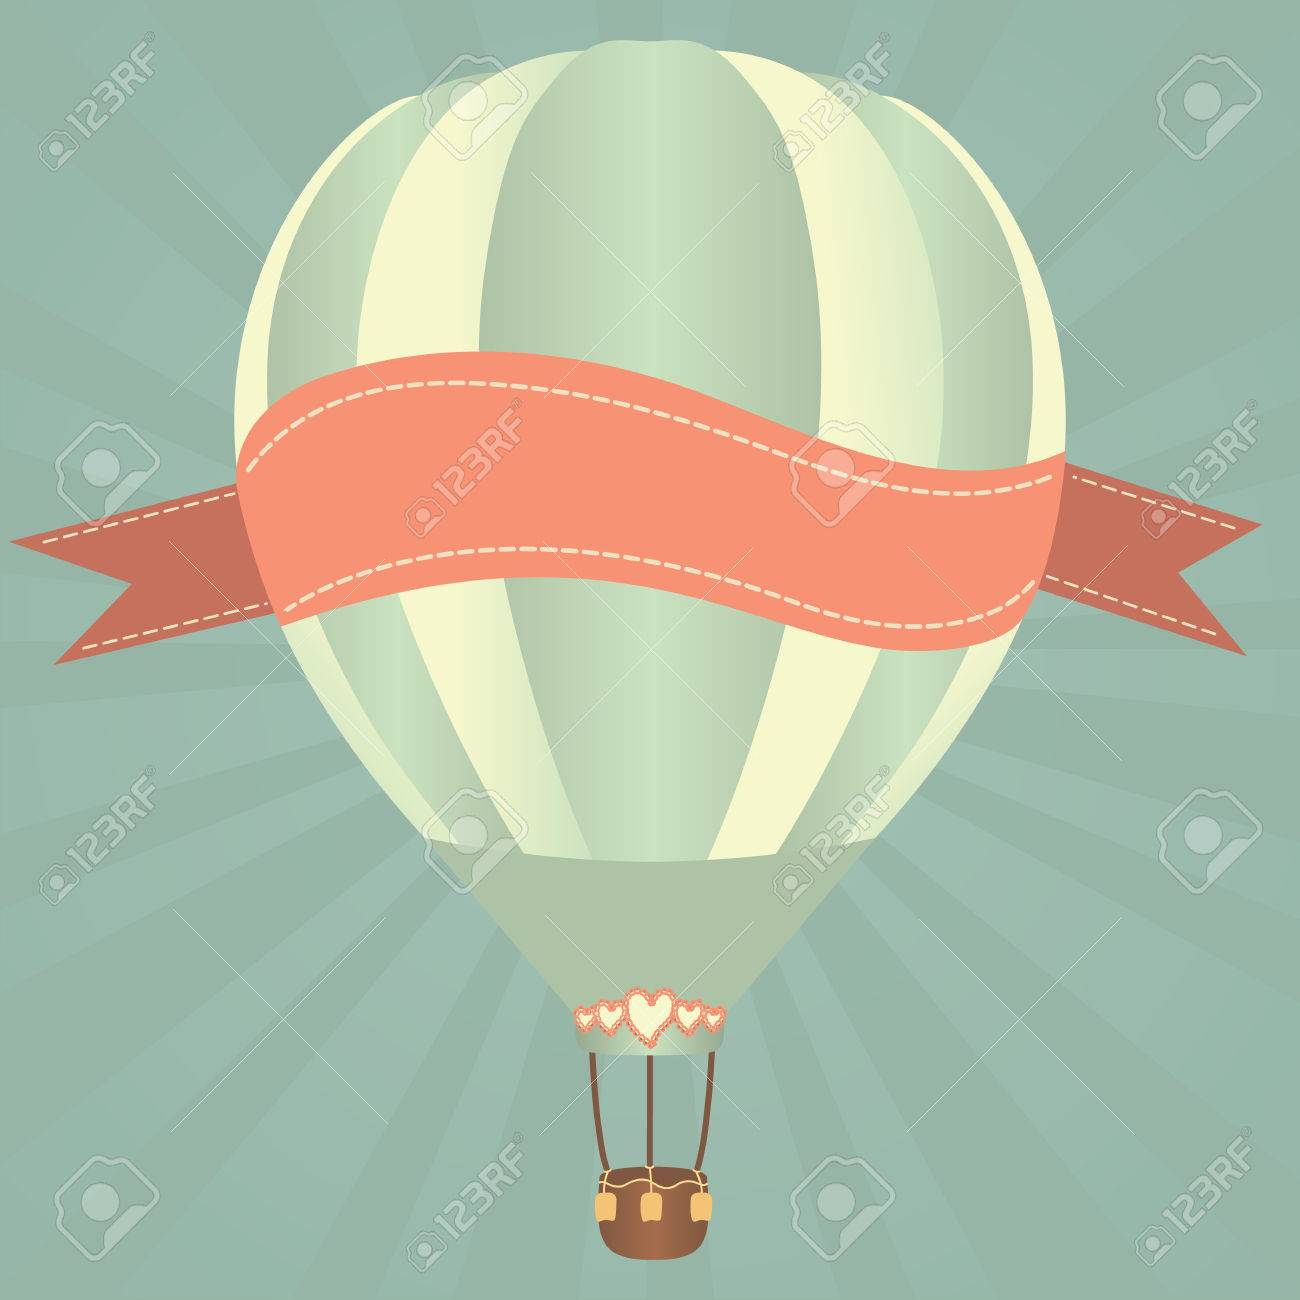 Hot air balloons in the sky. Vector illustration. Greeting card background - 26560579